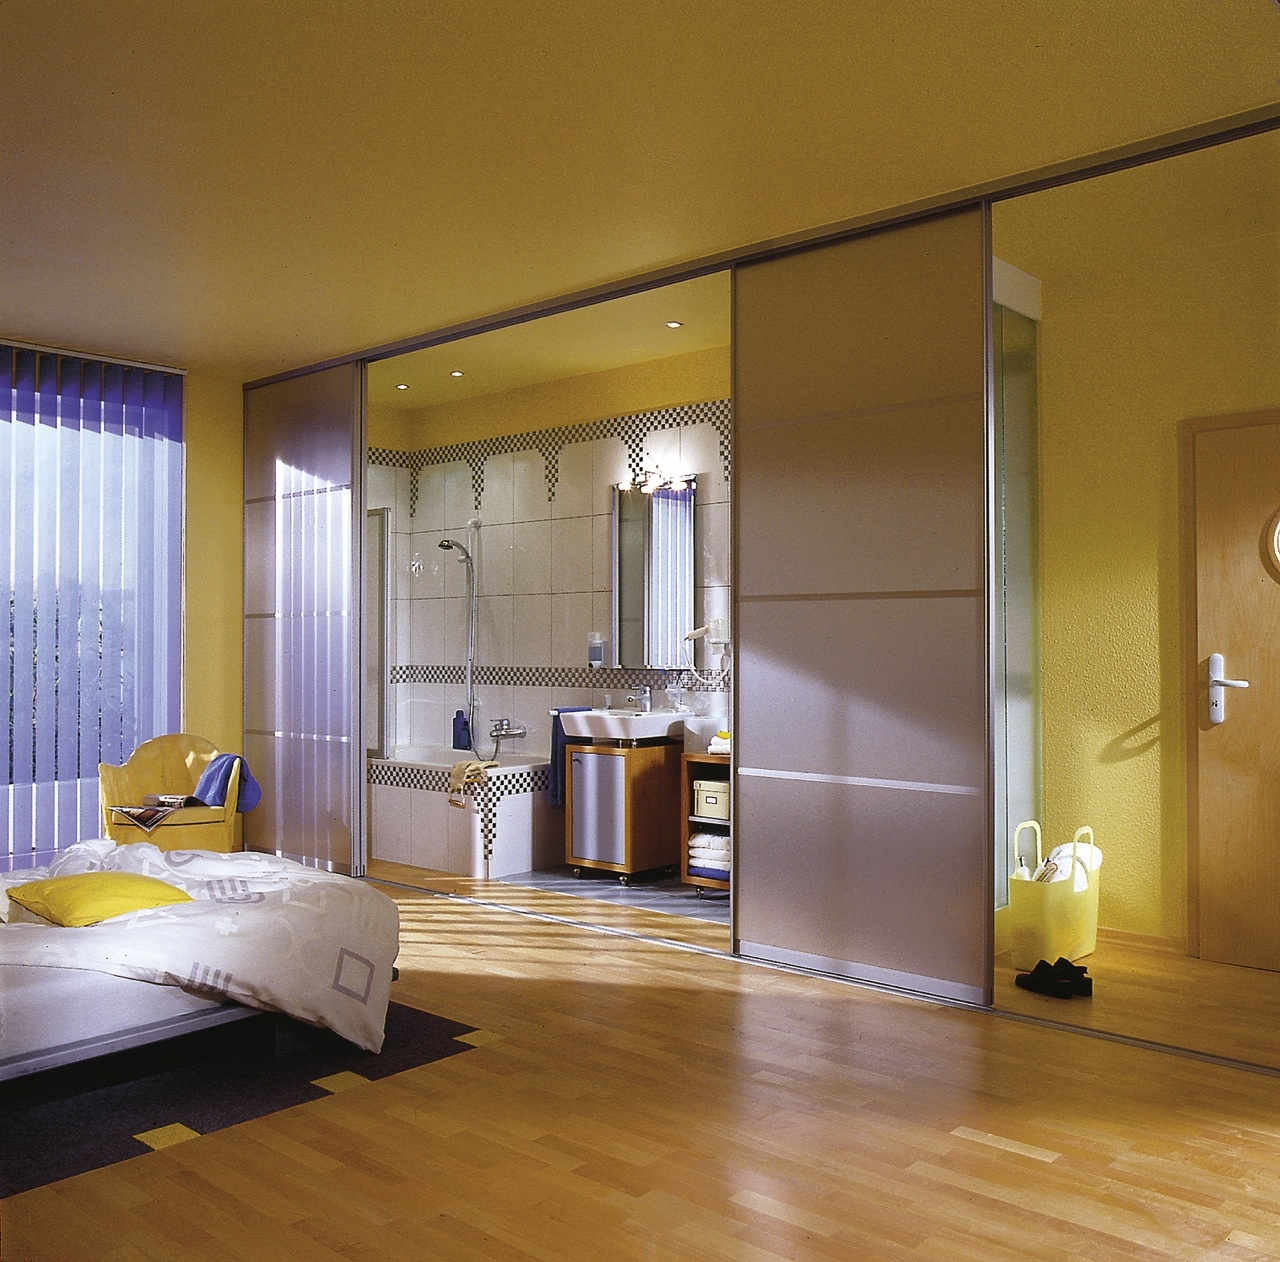 Superior 25+ Best Ideas About Hanging Room Dividers On Pinterest .